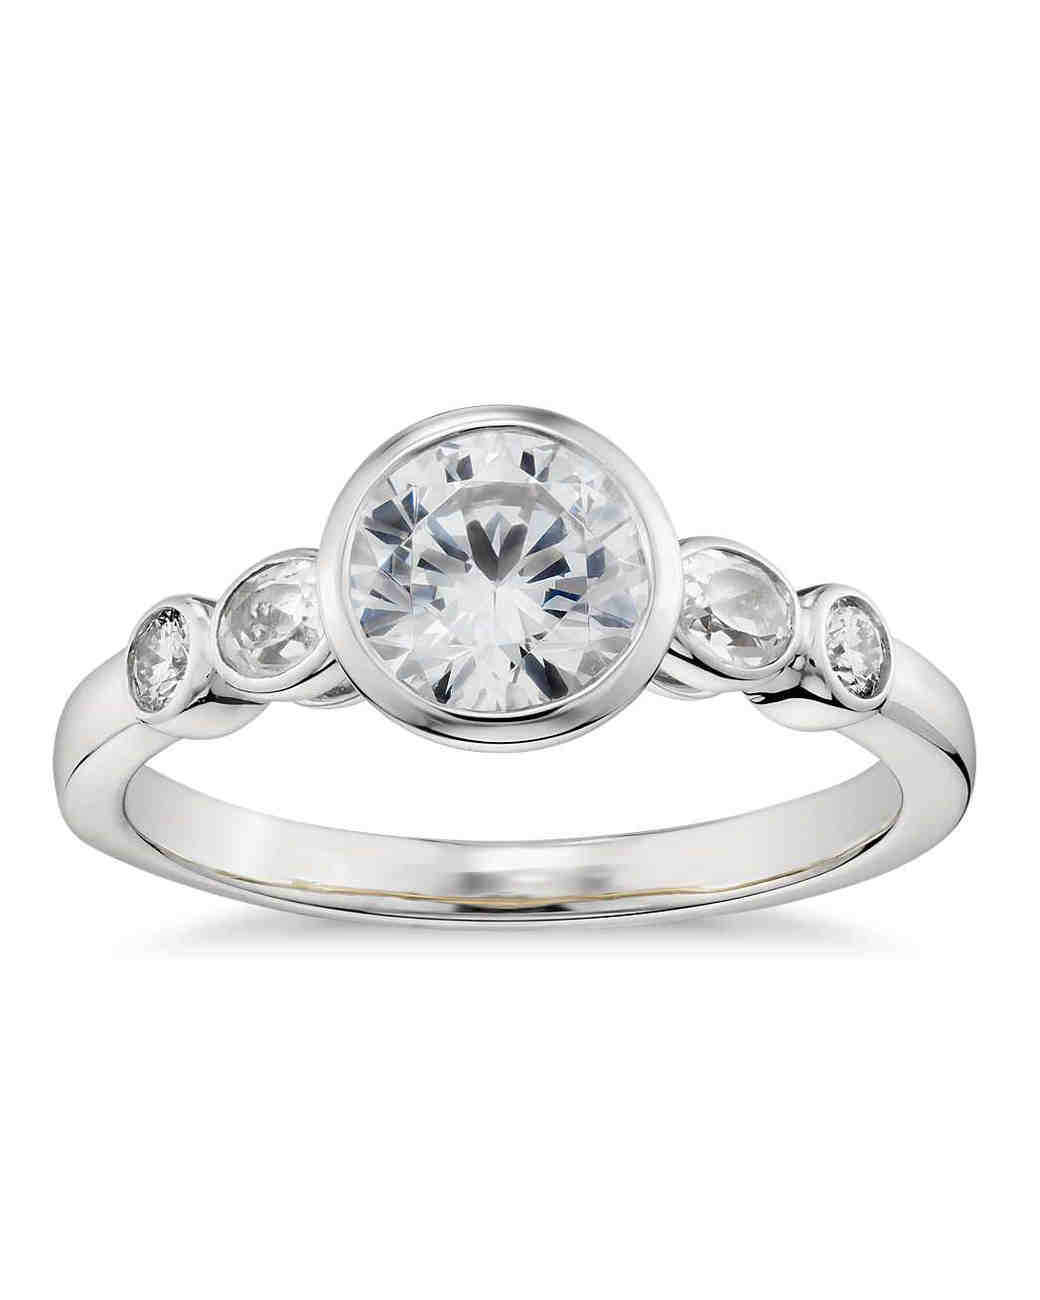 new-engagement-ring-designers-zac-posen-bezel-0515.jpg